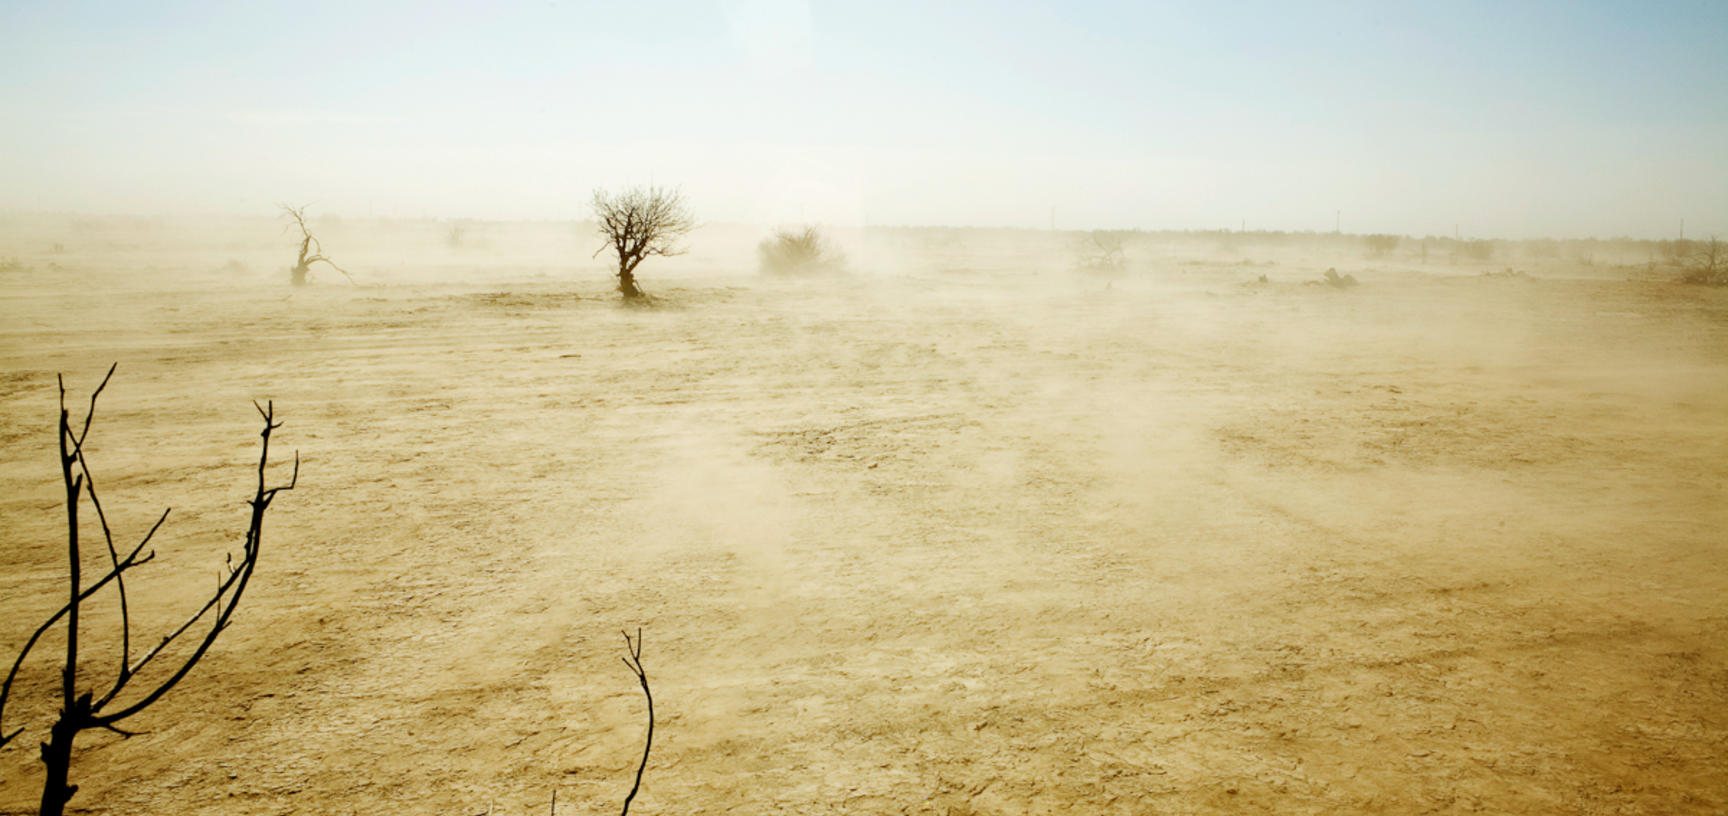 Desert and dust storms have spread over former wetlands near the Aral Sea, which has been reduced to a quarter of its previous size. Near Muynaq, Uzbekistan. Photograph by Carolyn Drake. March 2008.